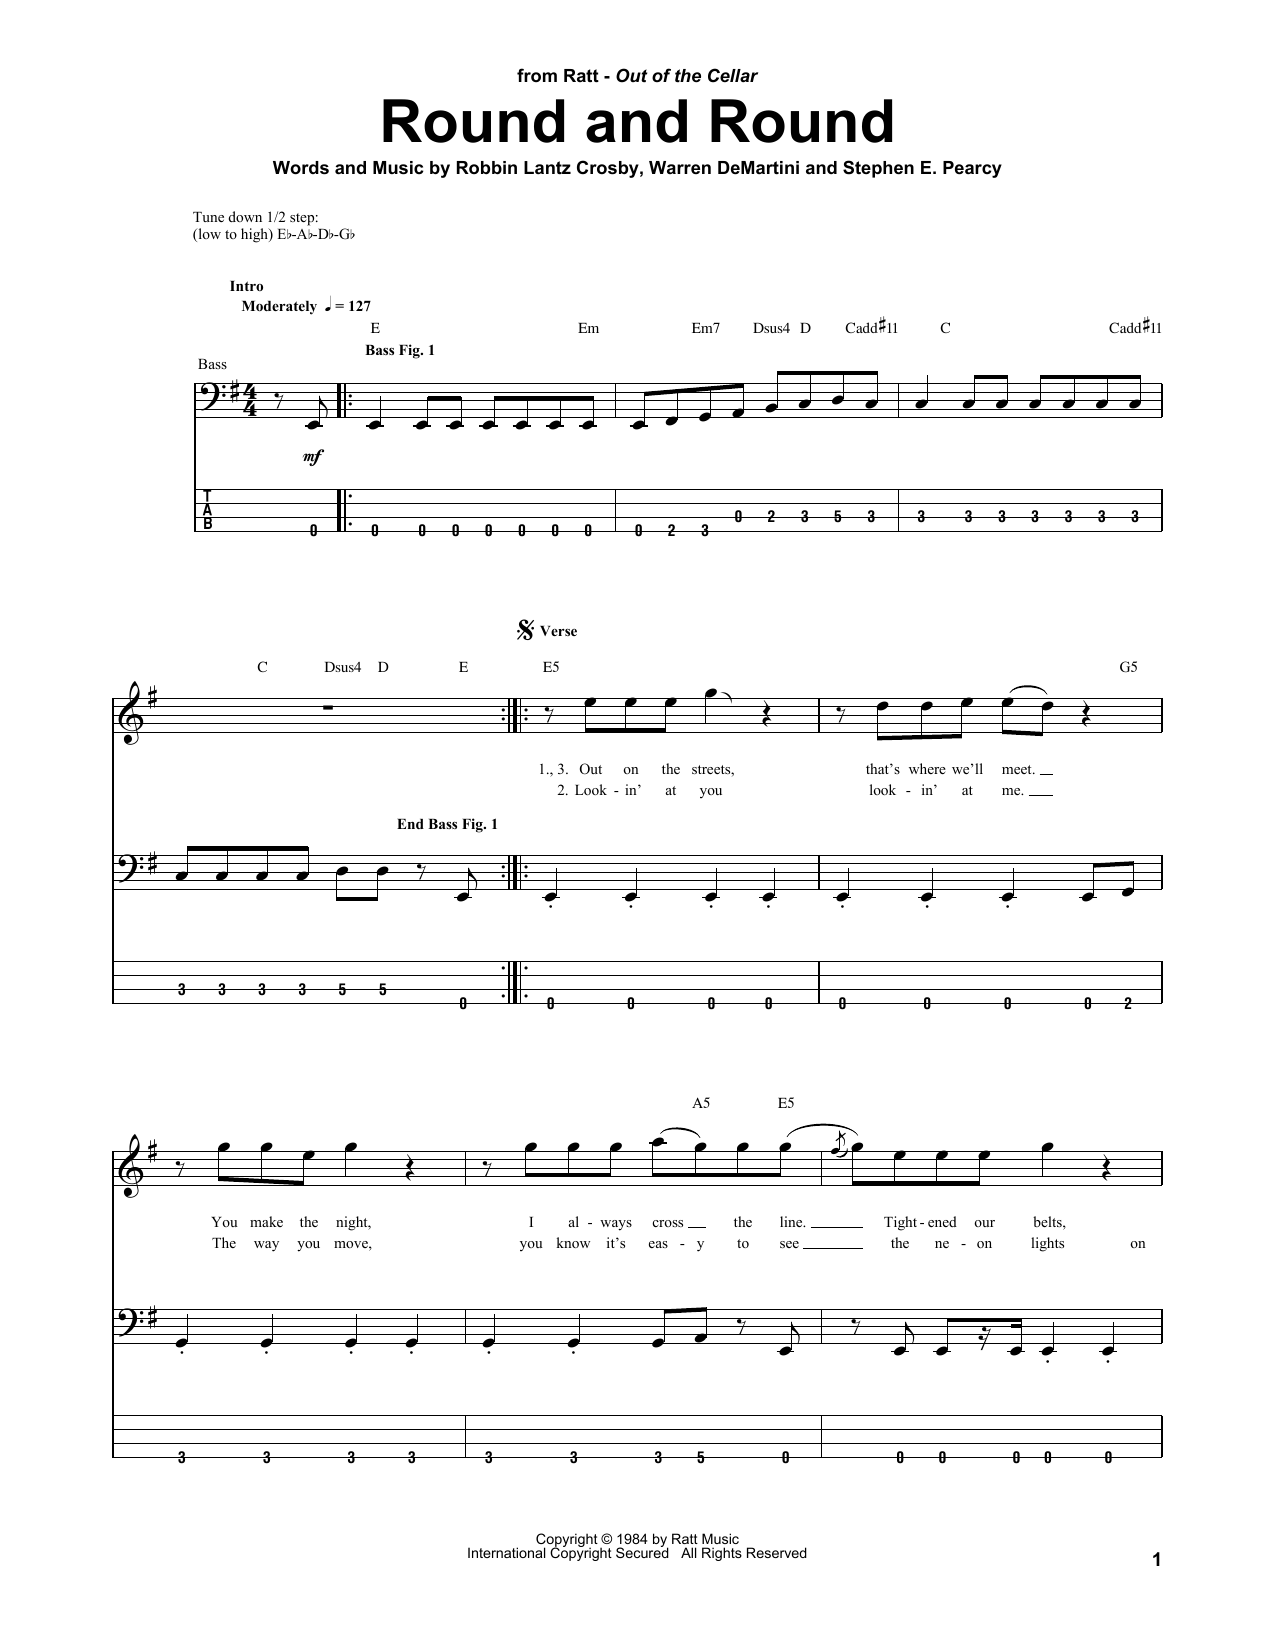 Ratt Round And Round sheet music notes and chords. Download Printable PDF.